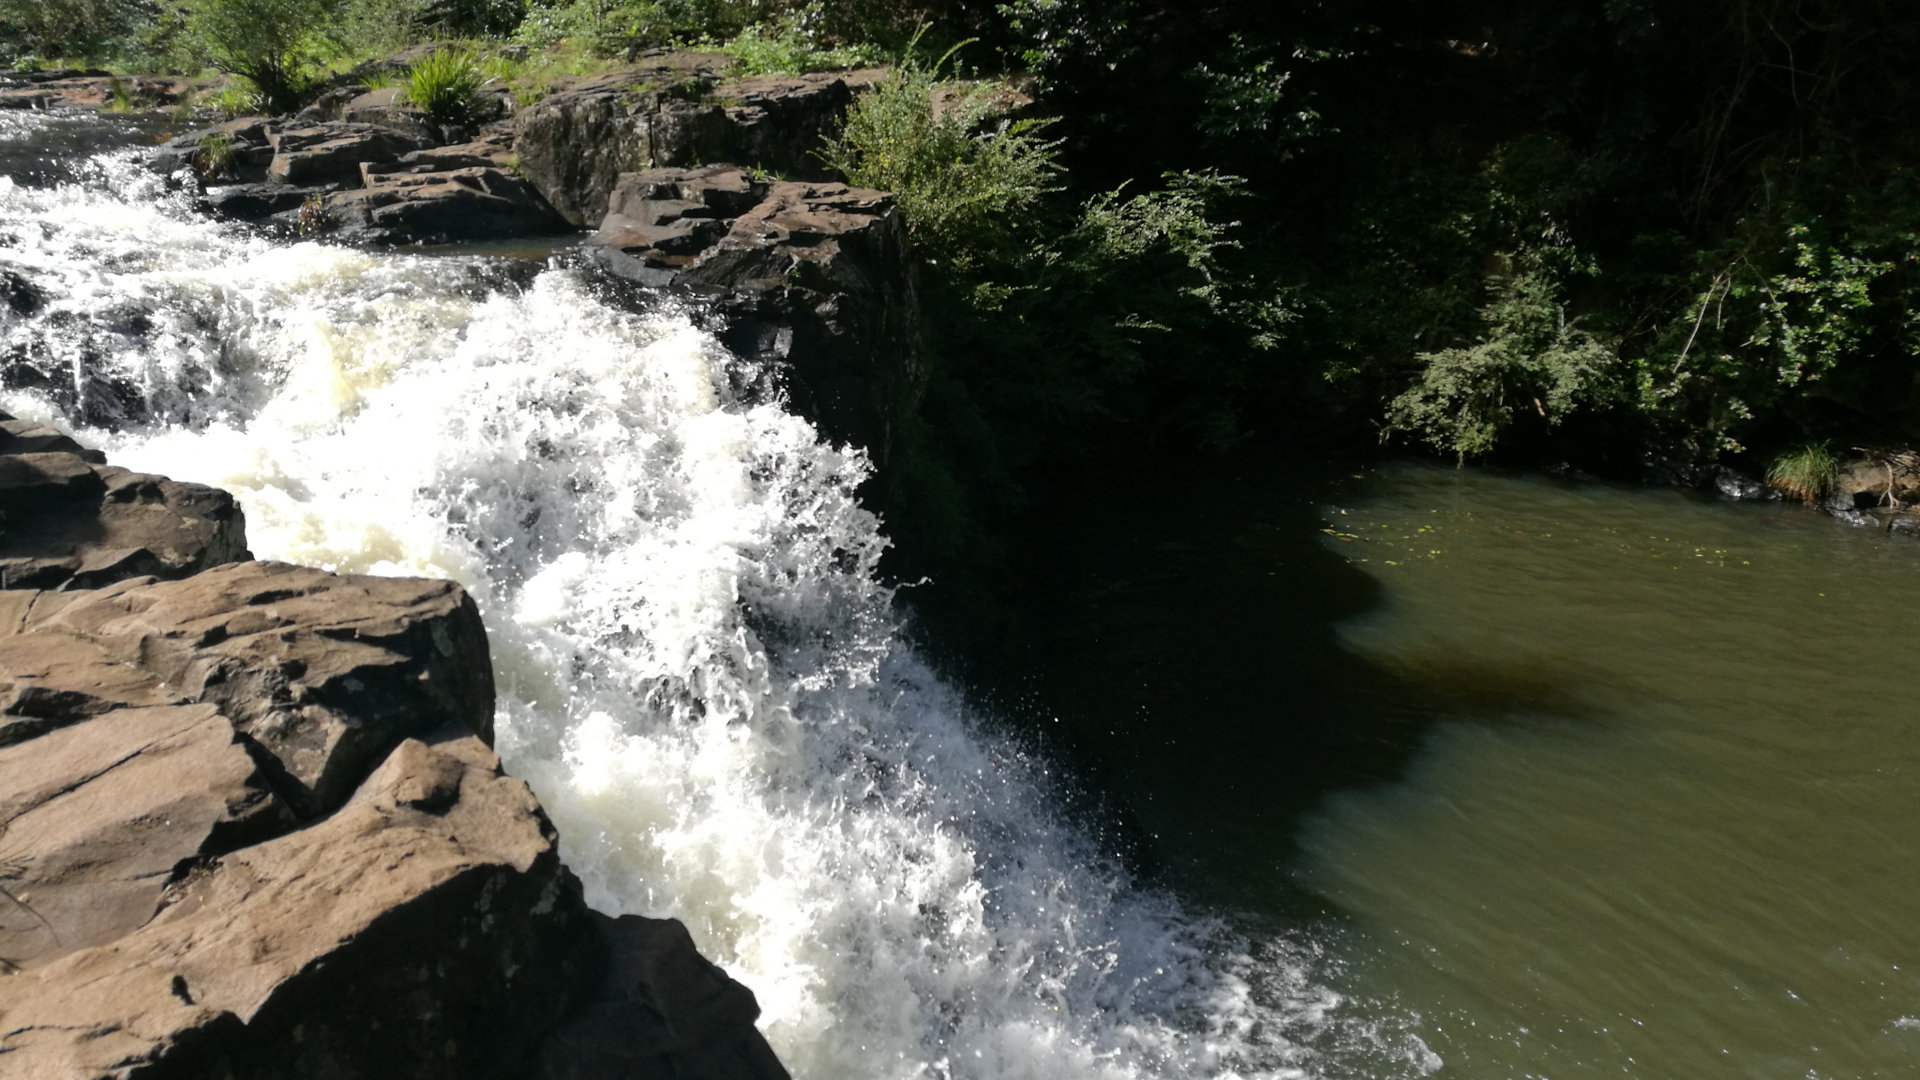 Waterfall at Gardners Falls, a popular spot near Maleny along the Obi Obi Creek. The easy walk leads to a swimming hole, with swinging ropes and rock ledges to jump in for the adventurous, and shallower water above the falls for younger children